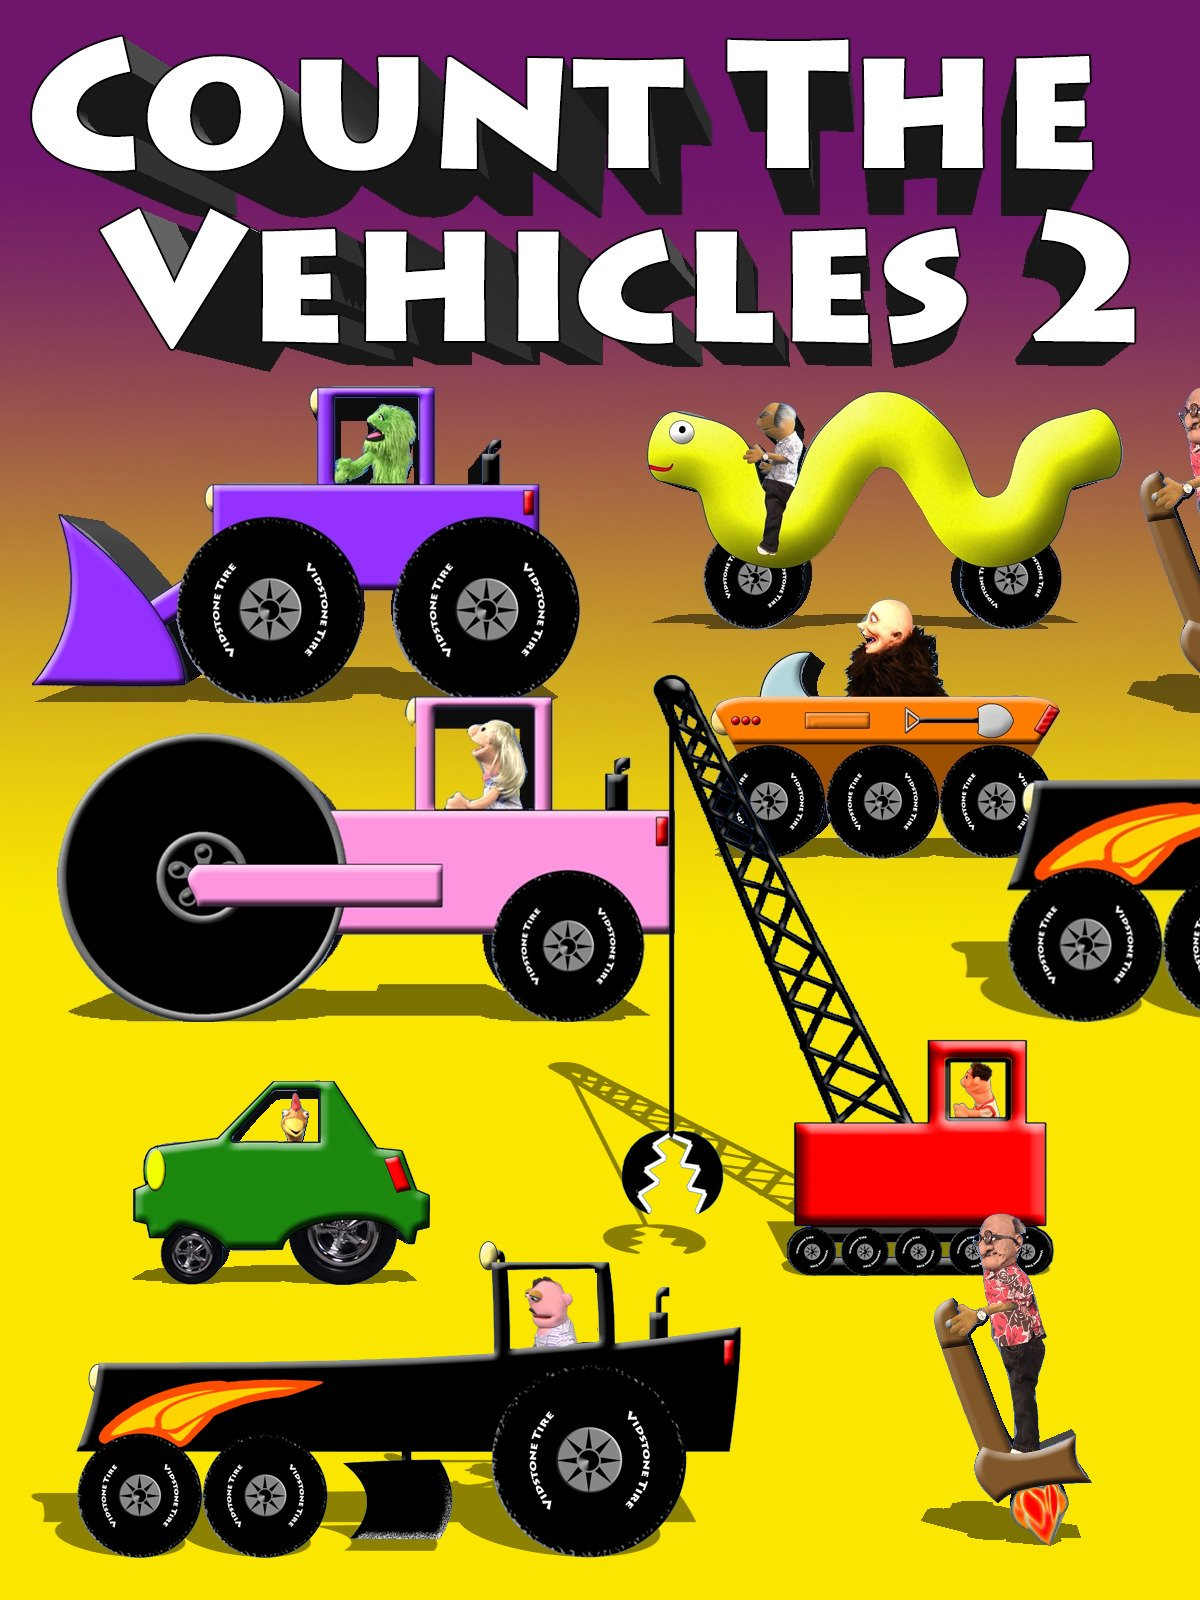 Count The Vehicles 2 on Amazon Prime Video UK